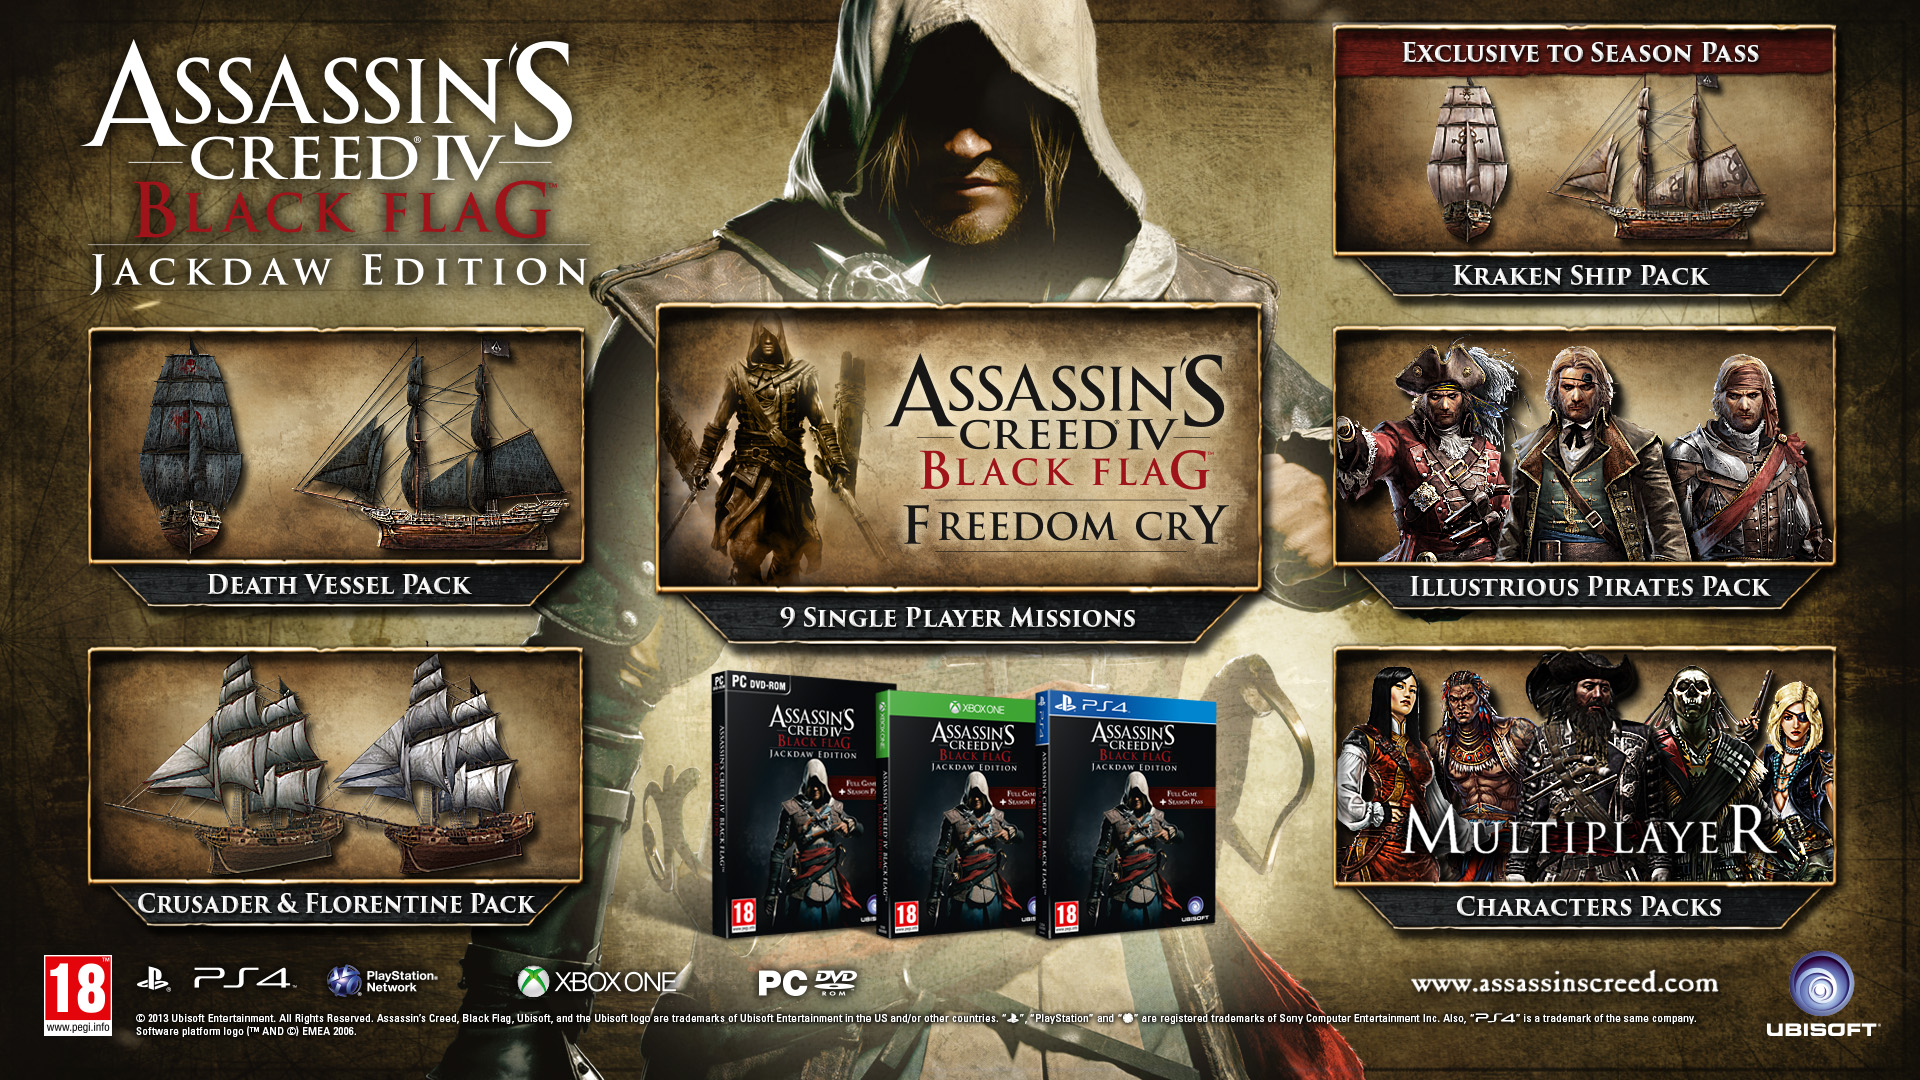 Assassins Creed Iv Black Flag Jackdaw Edition On Xbox One Detailed